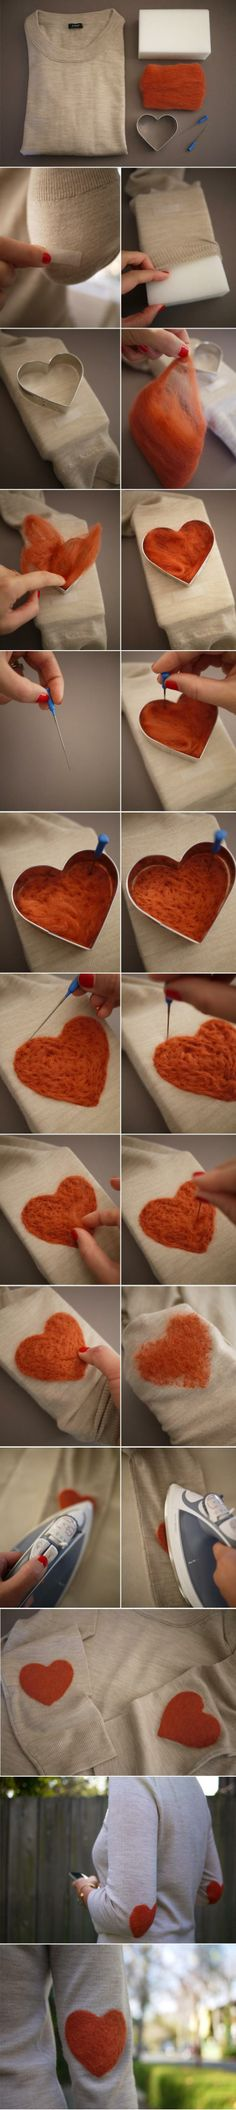 Super cute idea need to find some instructions though!!!!